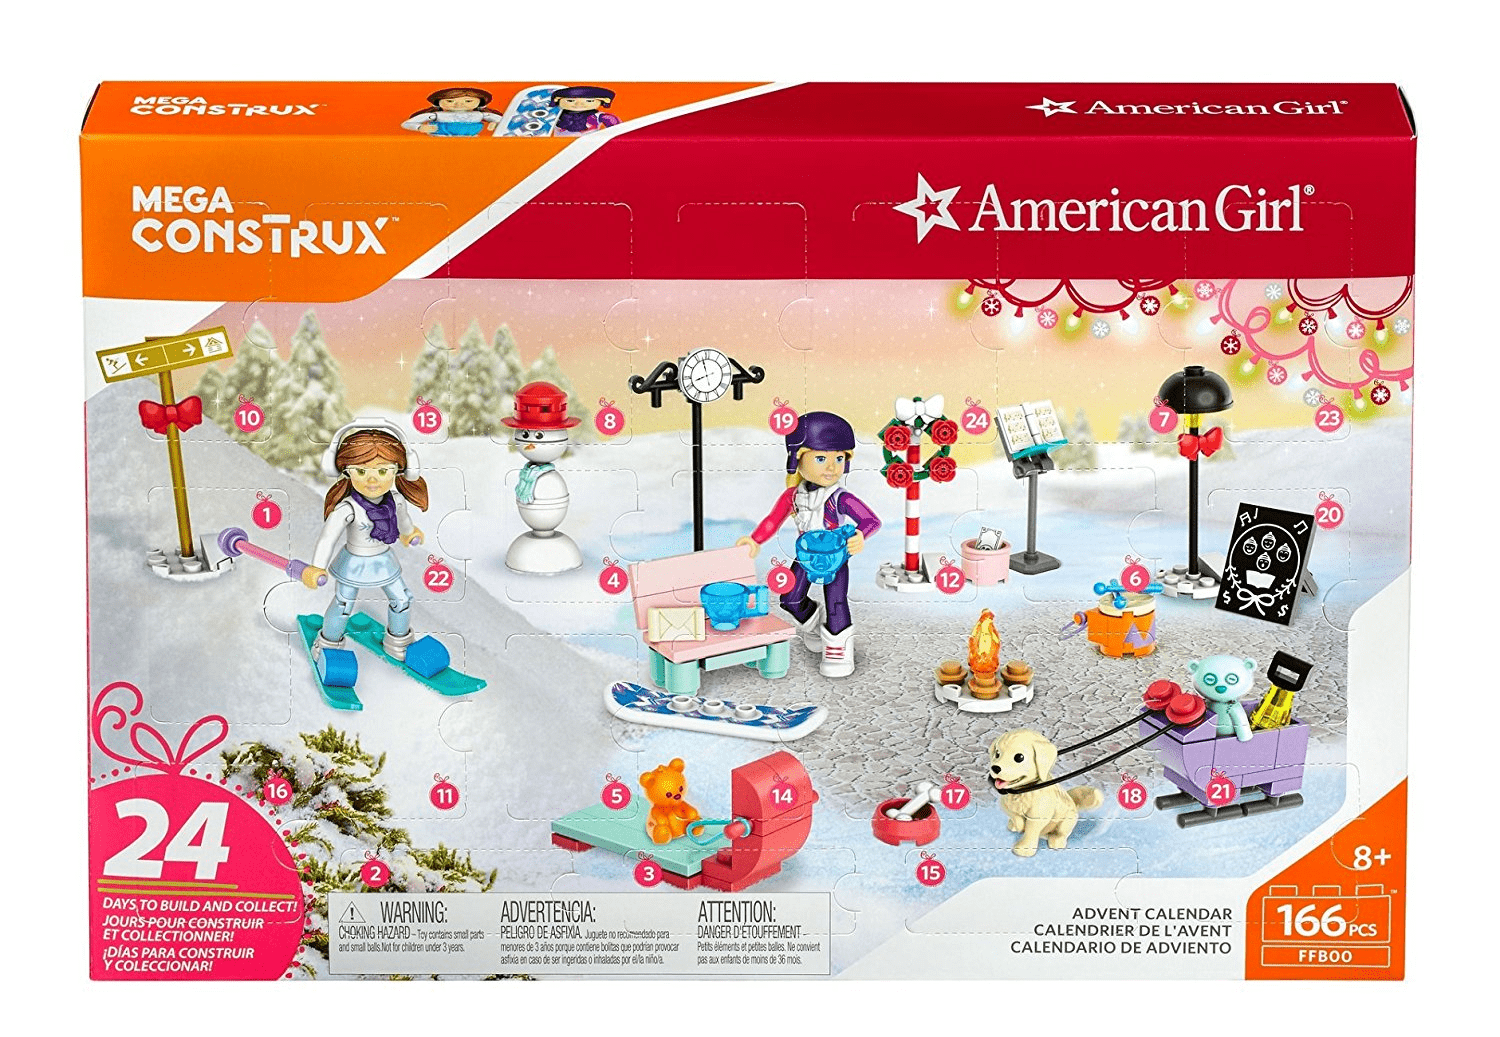 American Girl Advent Calendar $15.99 at Walmart!